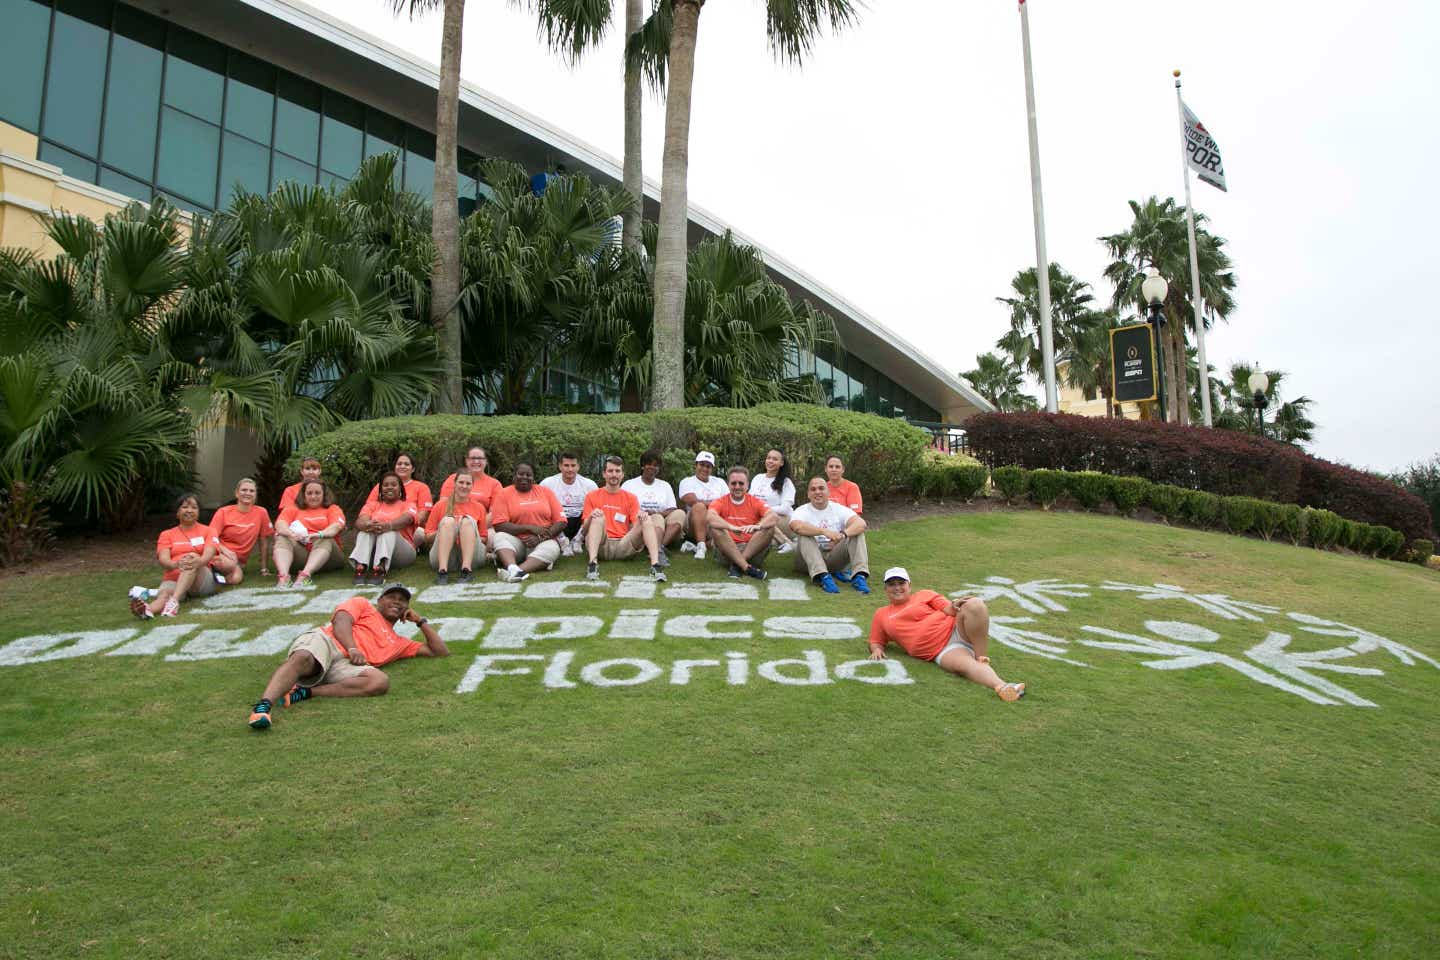 HICV Volunteers pose in front of the Special Olympics Florida facility.